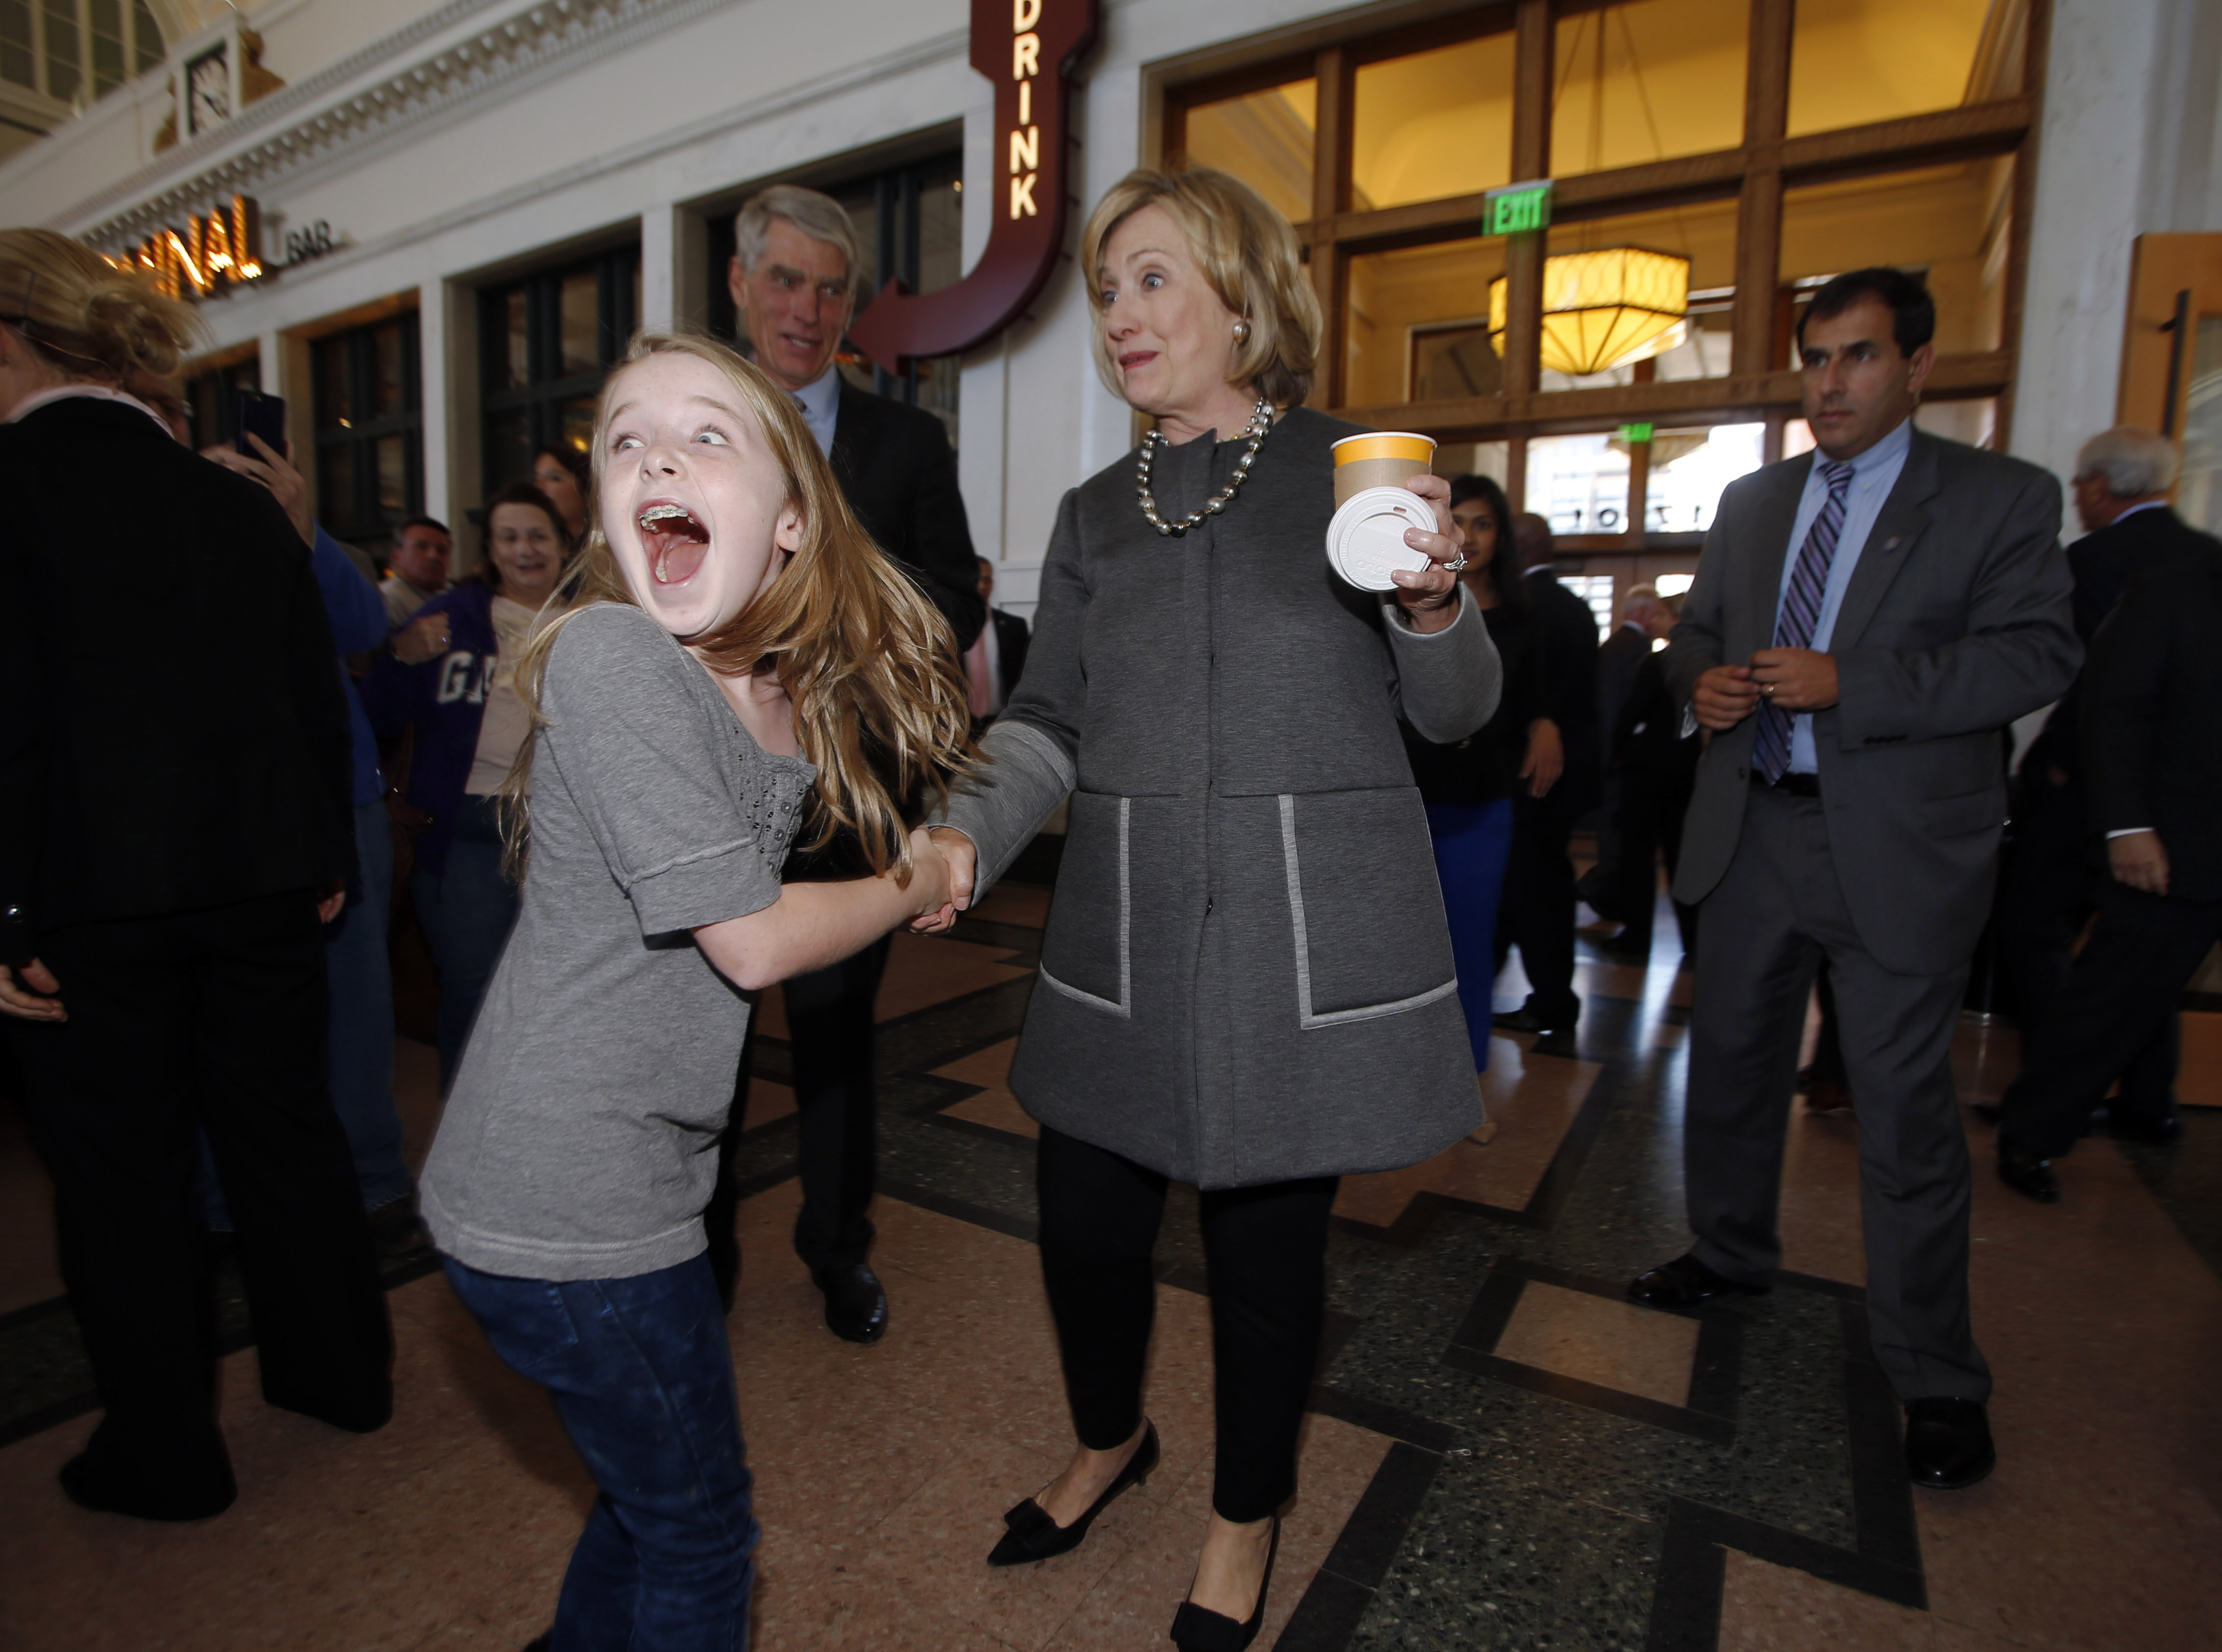 Ten-year-old Macy Friday, front left, reacts as she looks back at her family after meeting Hillary Clinton, front right, as she campaigns for U.S. Sen. Mark Udall, D-Colo., back, during a stop in Denver on Monday, Oct. 13, 2014.